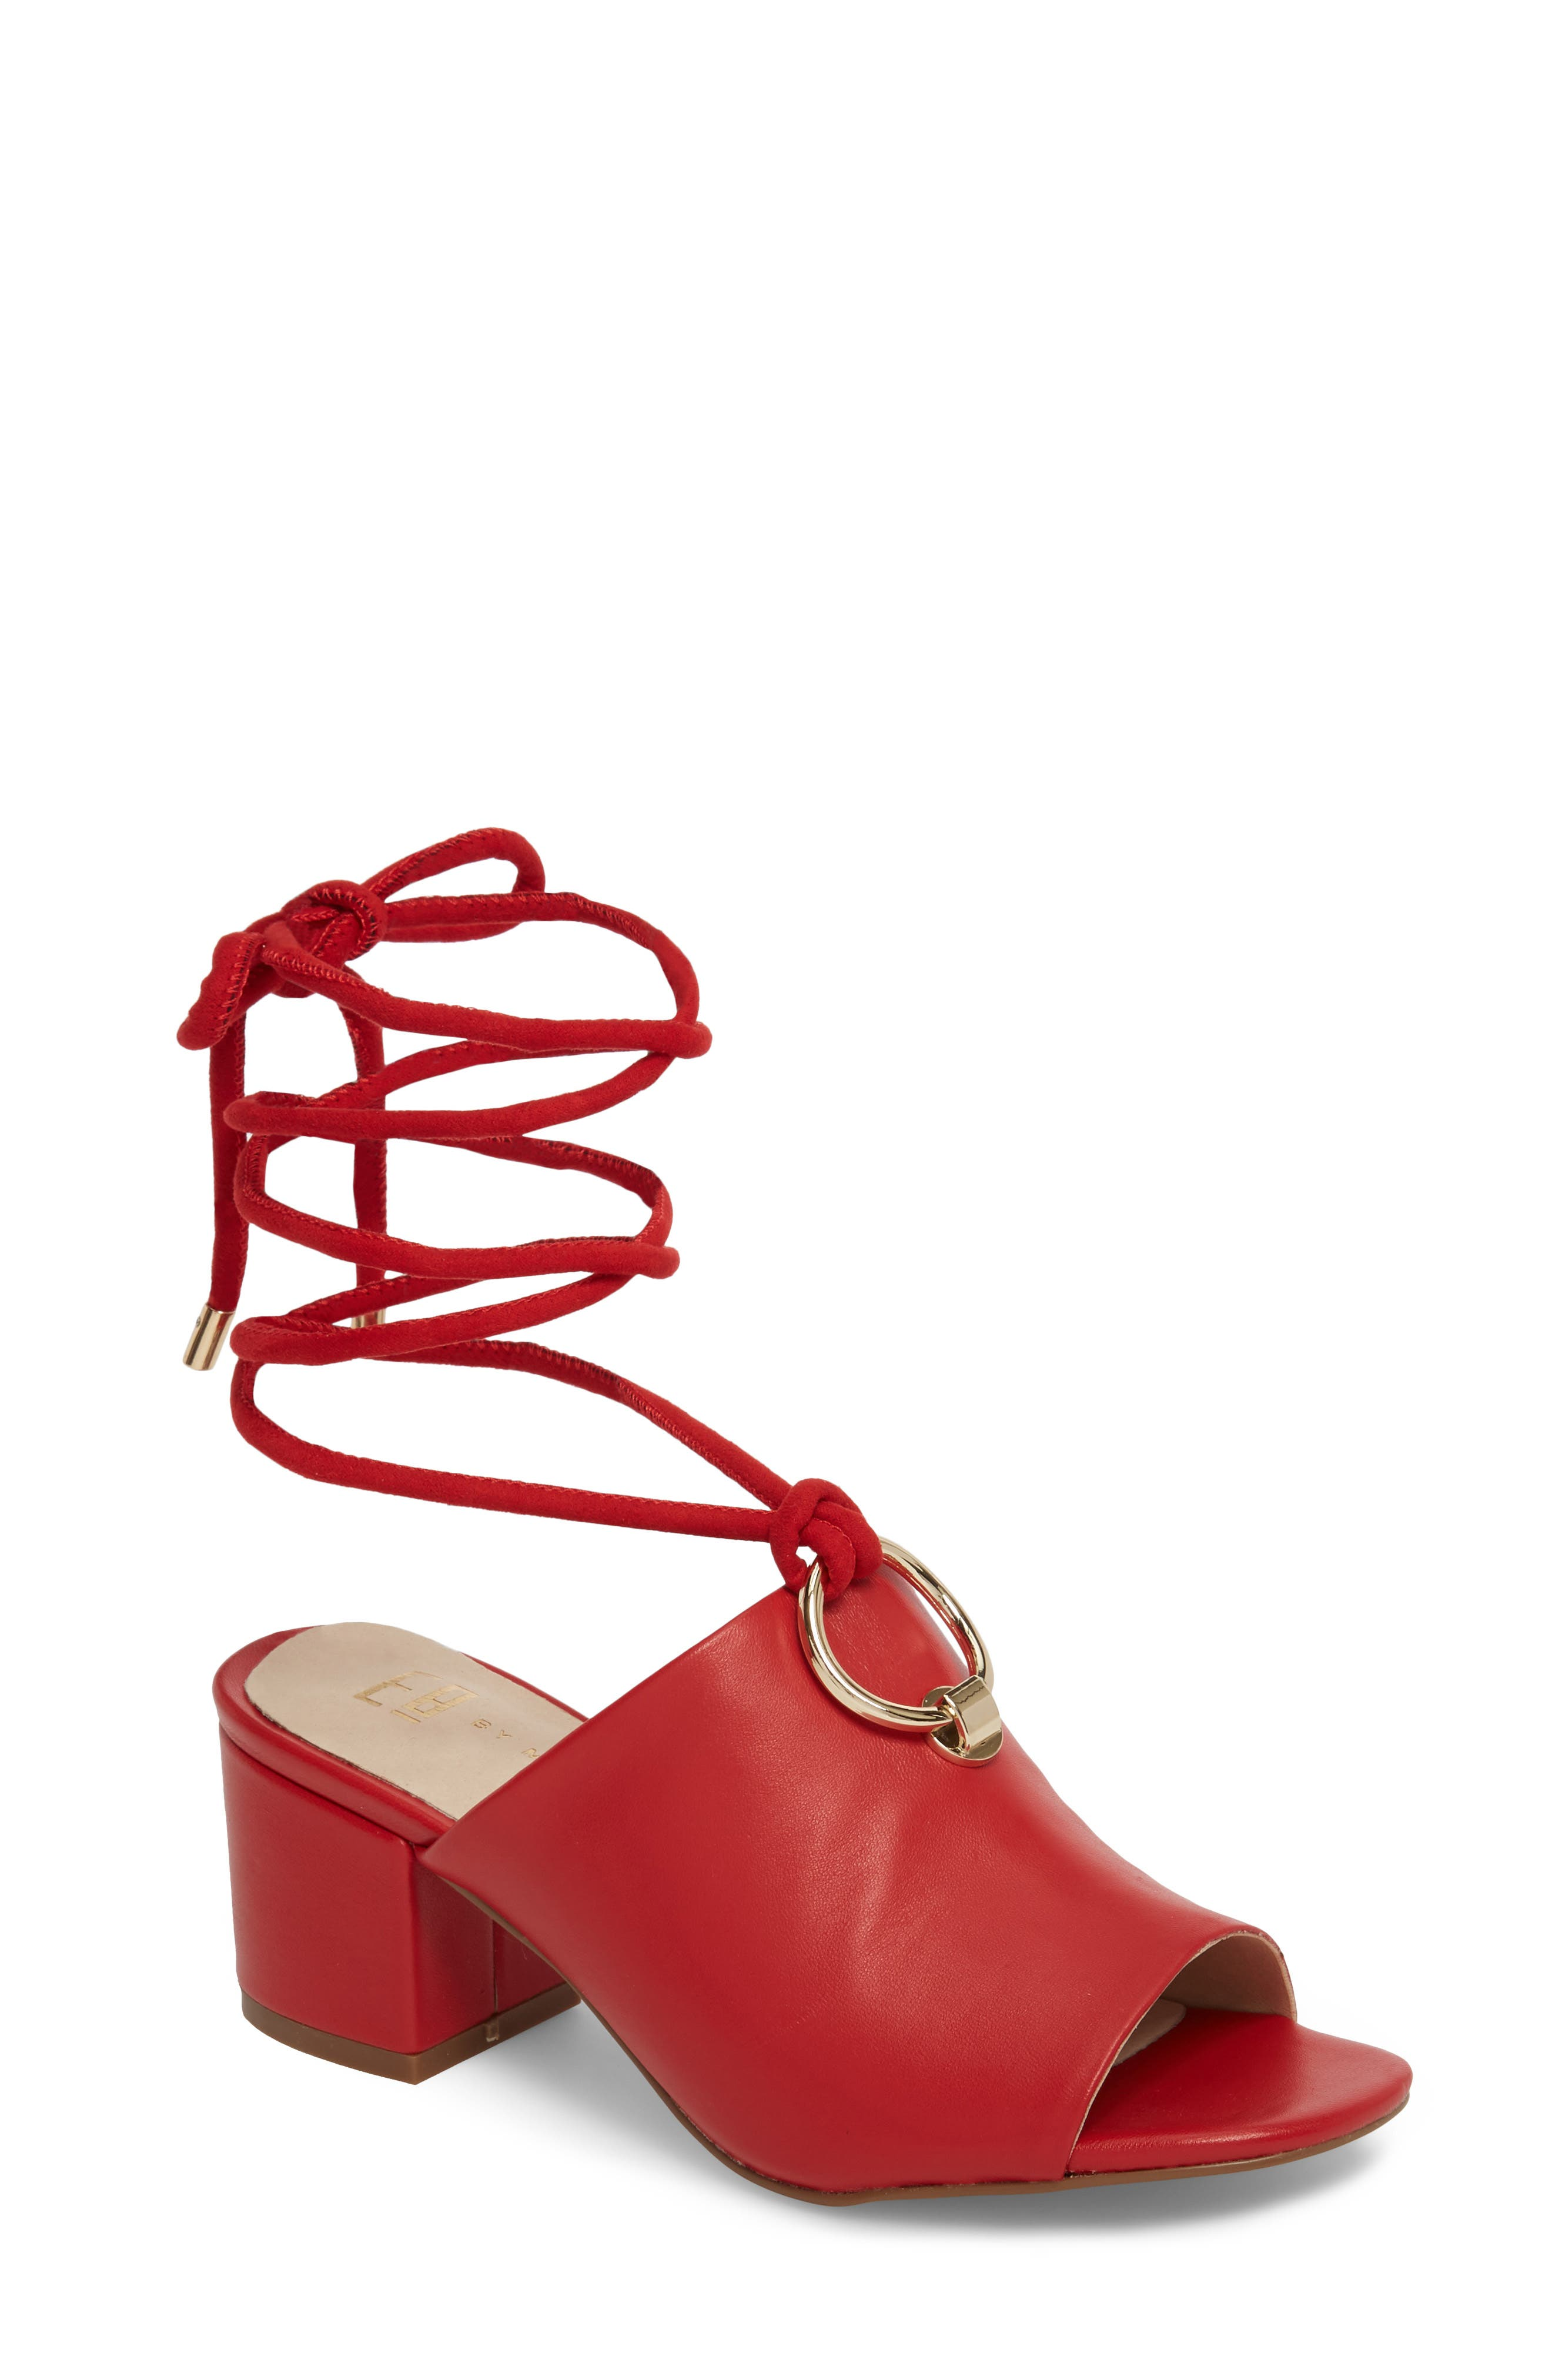 Mason Ankle Tie Sandal,                             Main thumbnail 1, color,                             Red Leather